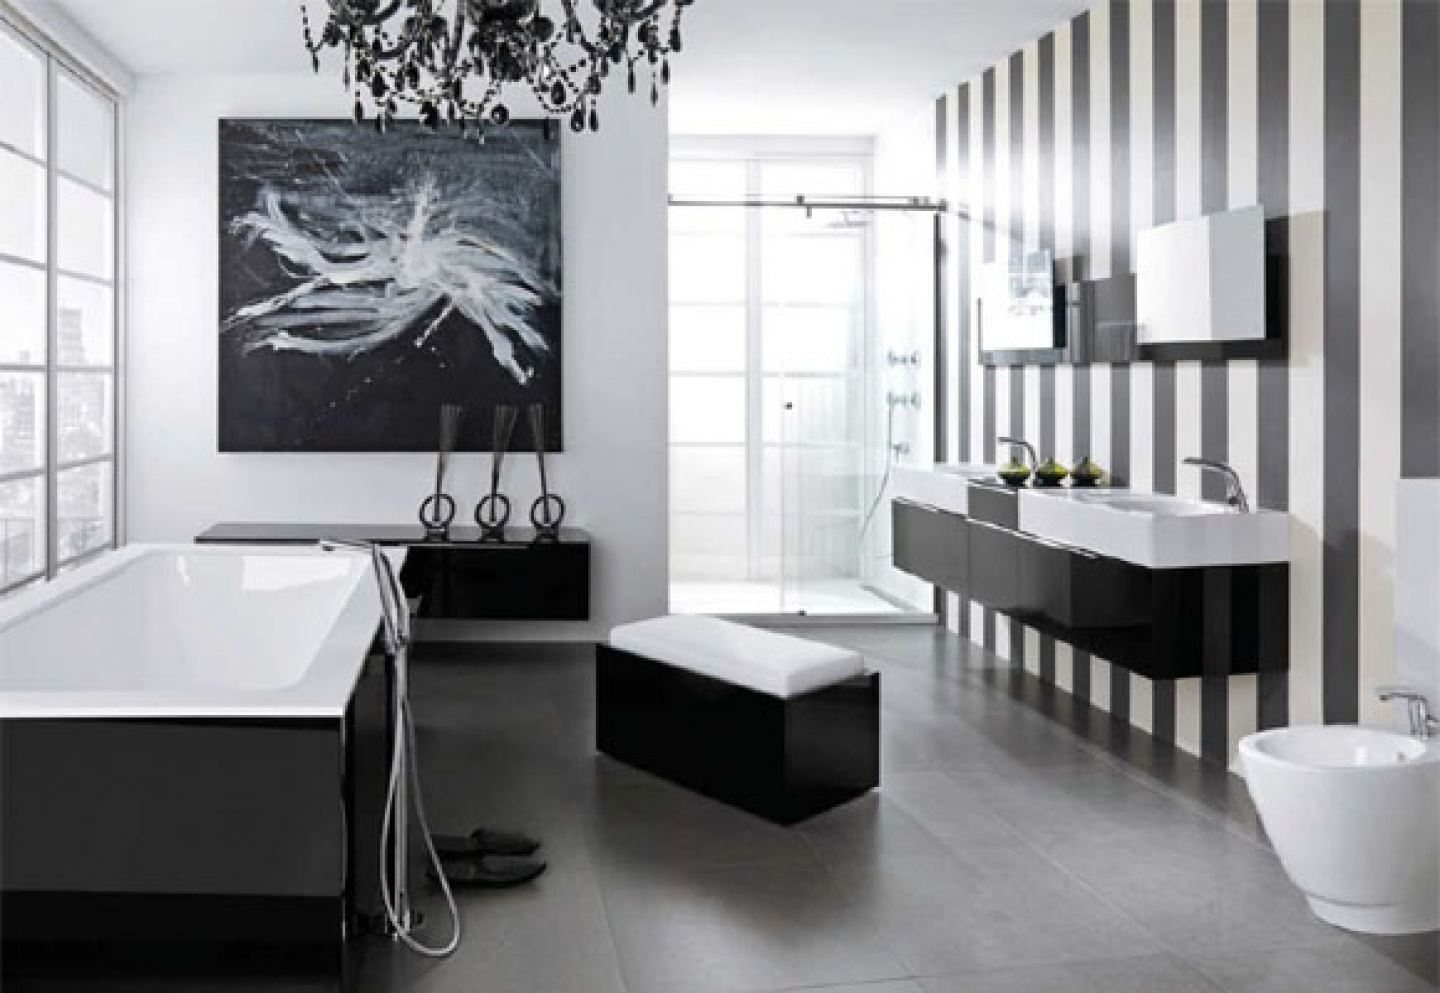 Most Current Wall Mounted Bathroom Chandeliers With Regard To Black And White Bathroom Border Tiles Black White Glossy Finished (View 7 of 15)